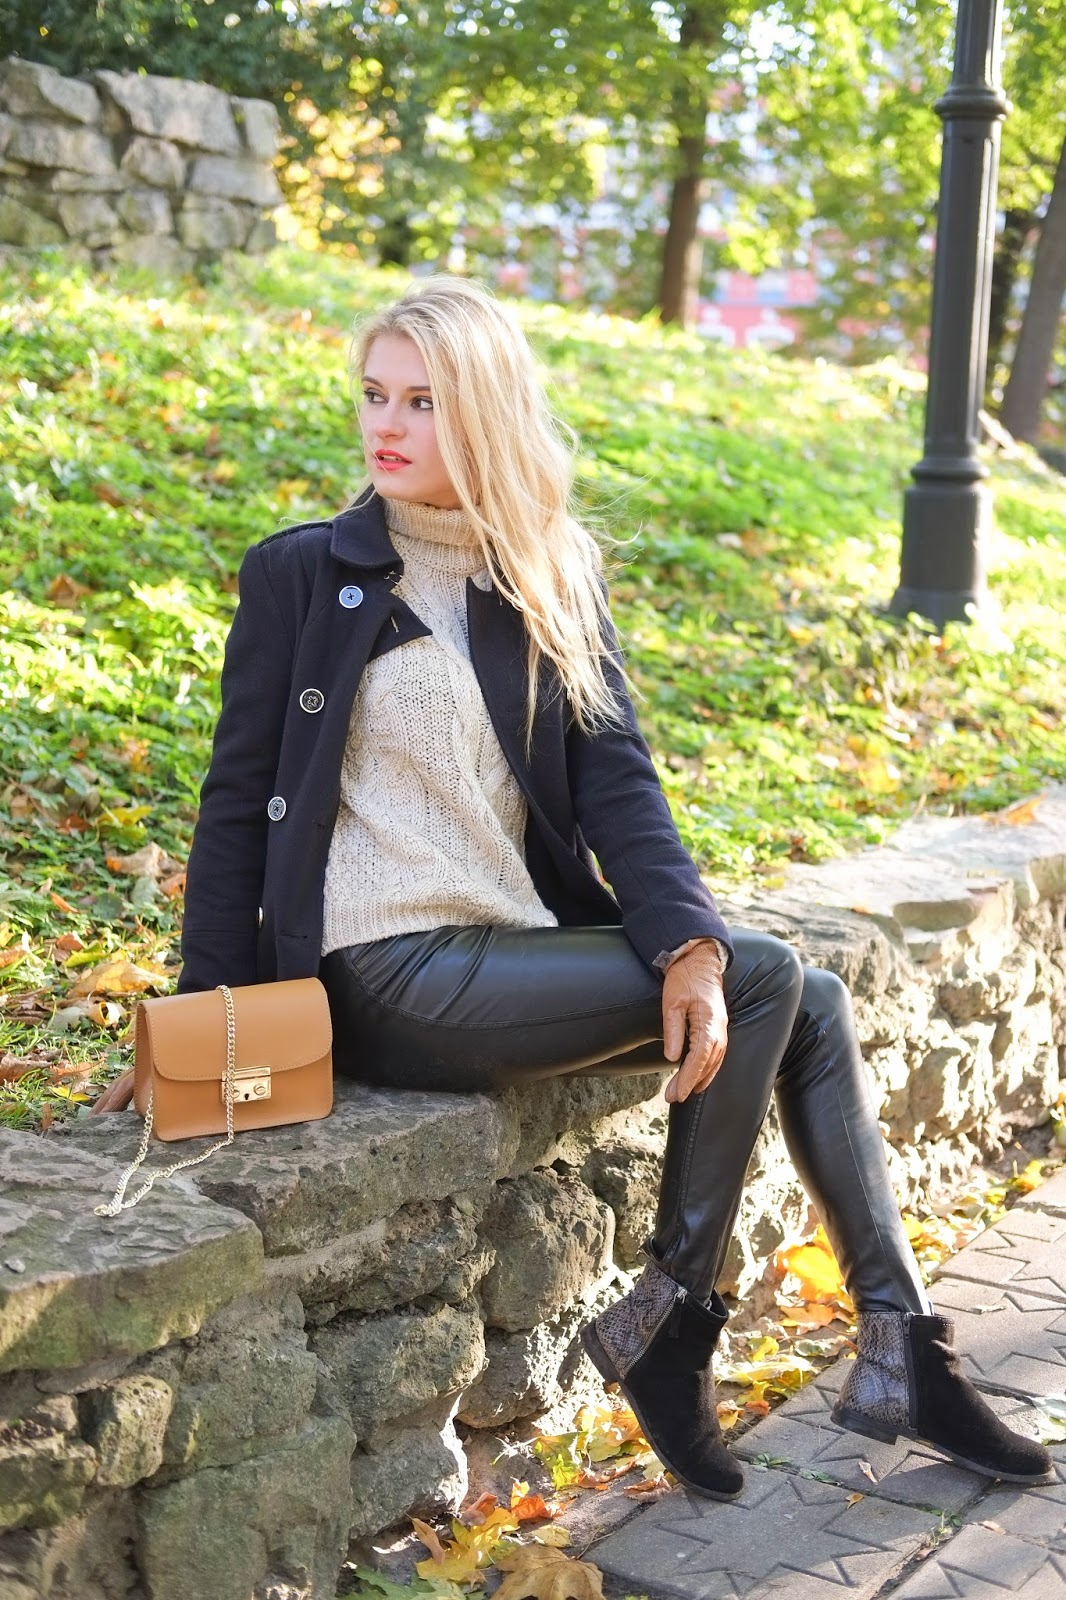 Autumn Outfit: French Chic